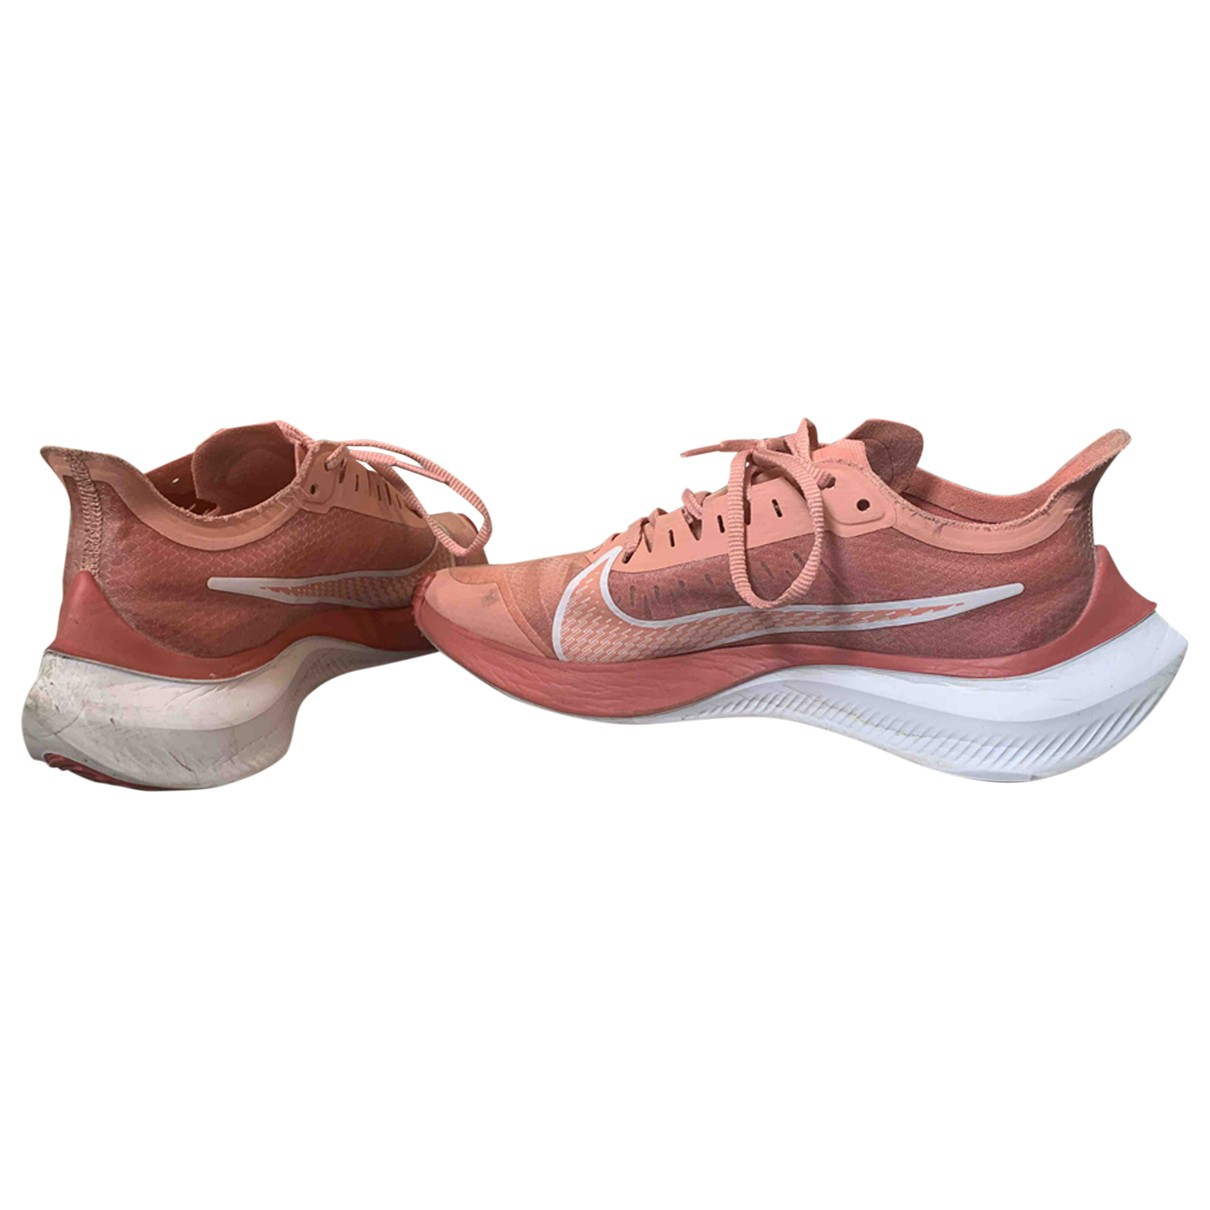 Nike Zoom Fly  Pink Cloth Trainers for Women 38.5 EU